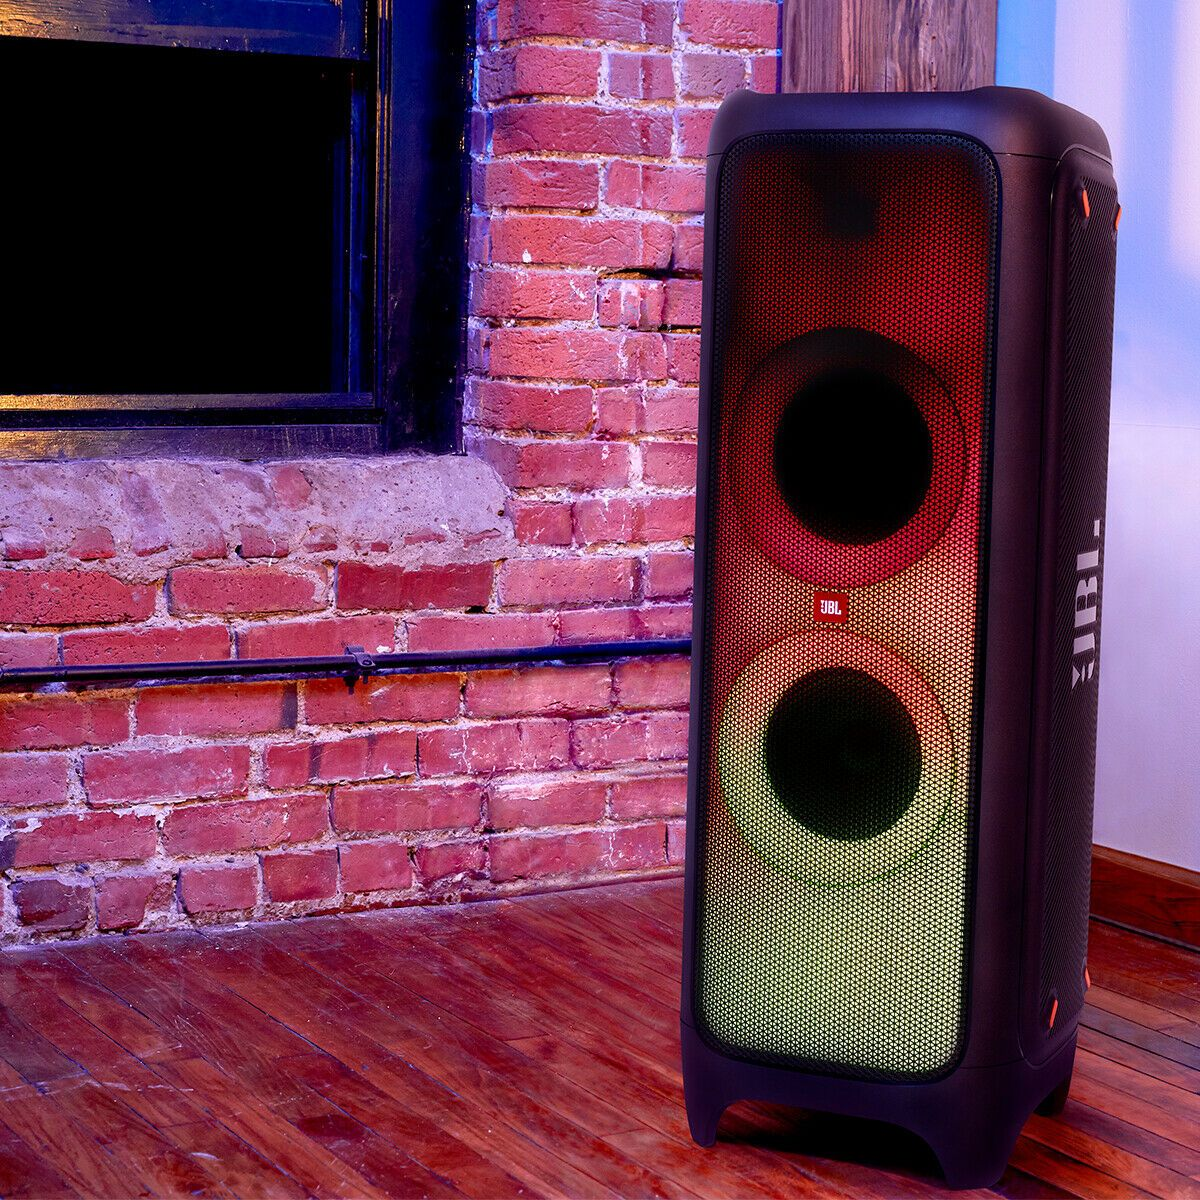 Jbl Partybox 1000 Powerful Bluetooth Party Speaker With Full Panel Light Effects In 2020 Party Speakers Jbl Speaker